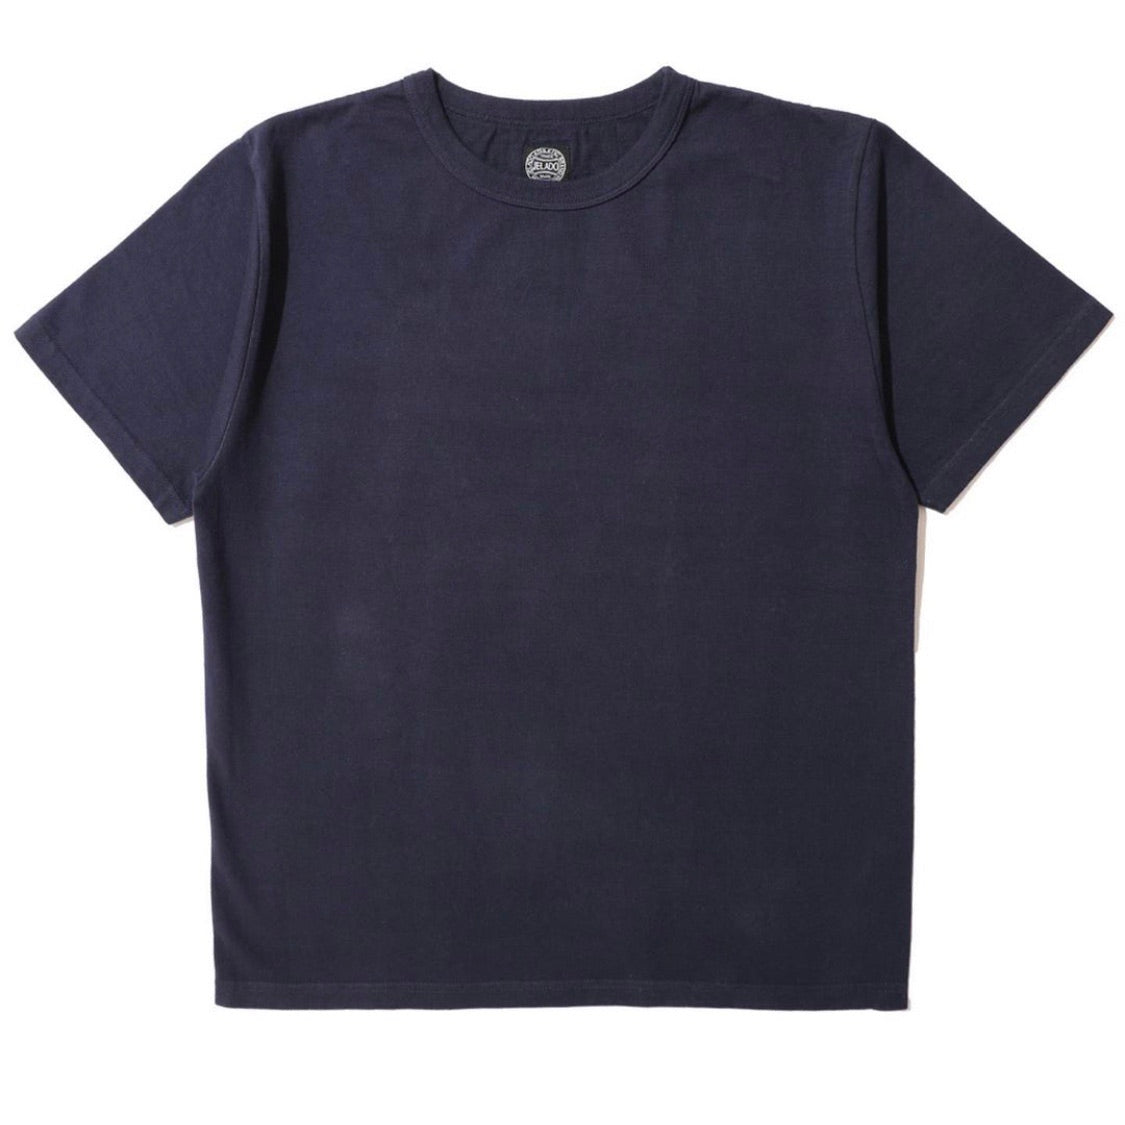 Vintage-Spec Tsuri-Ami Loopwheel Tee in Old Navy